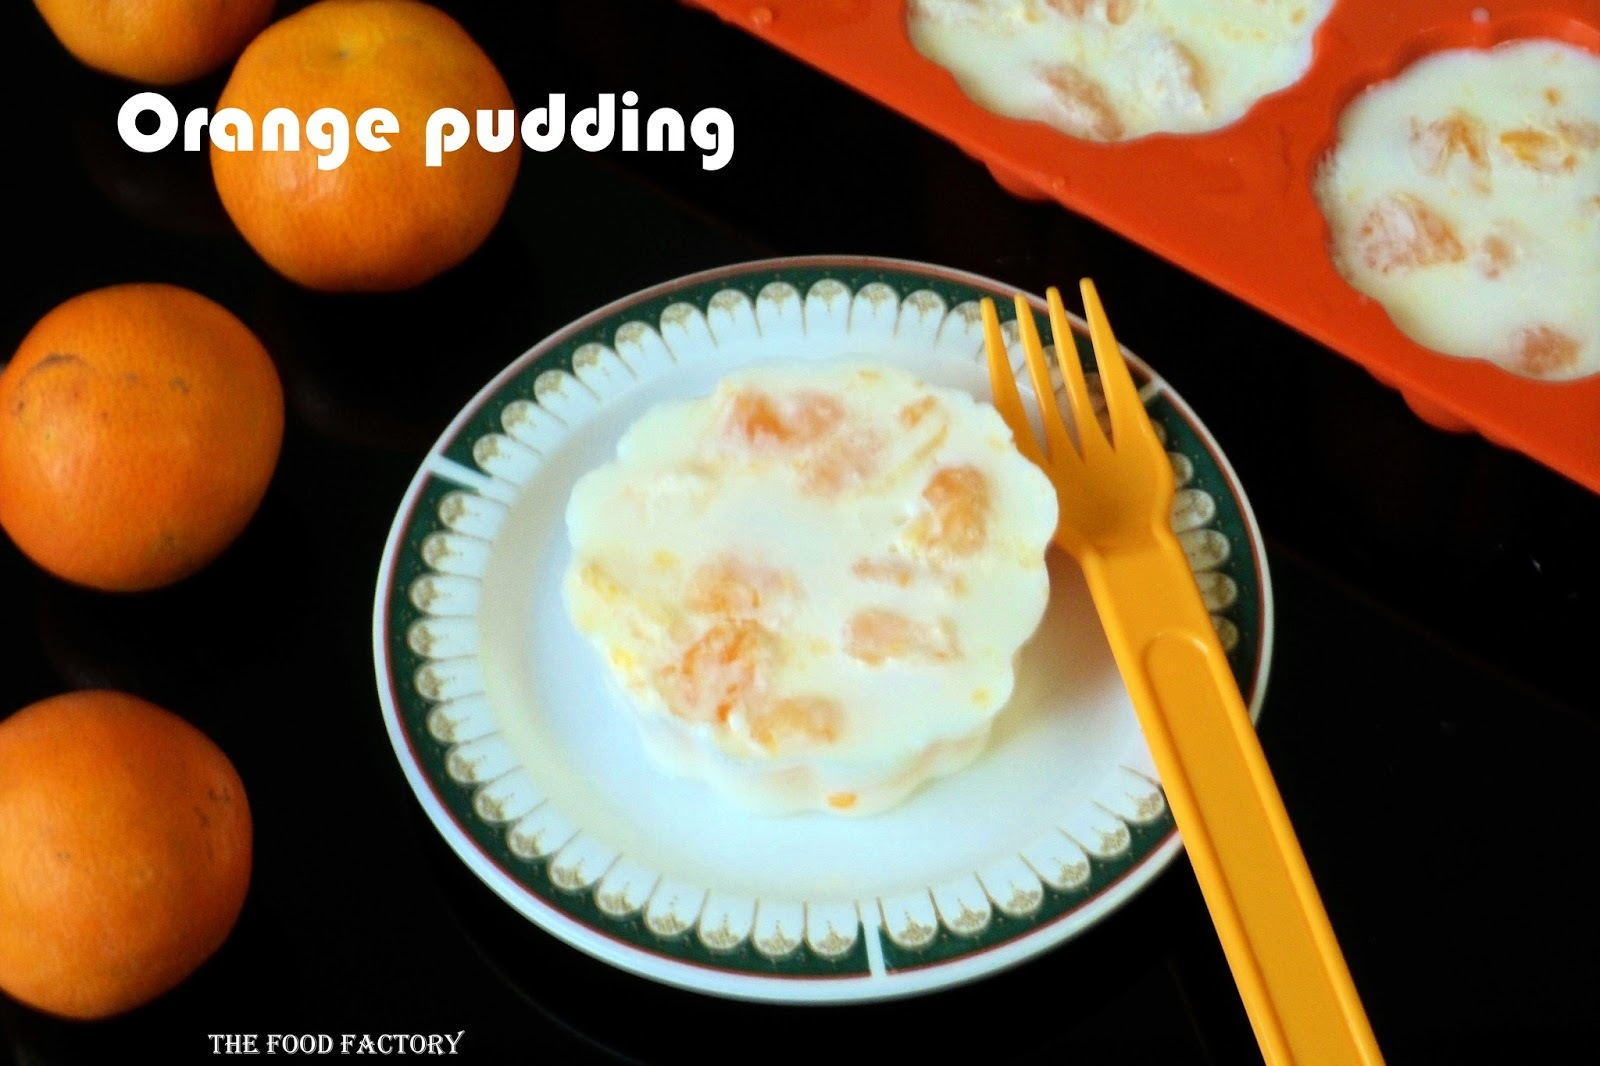 Orange pudding